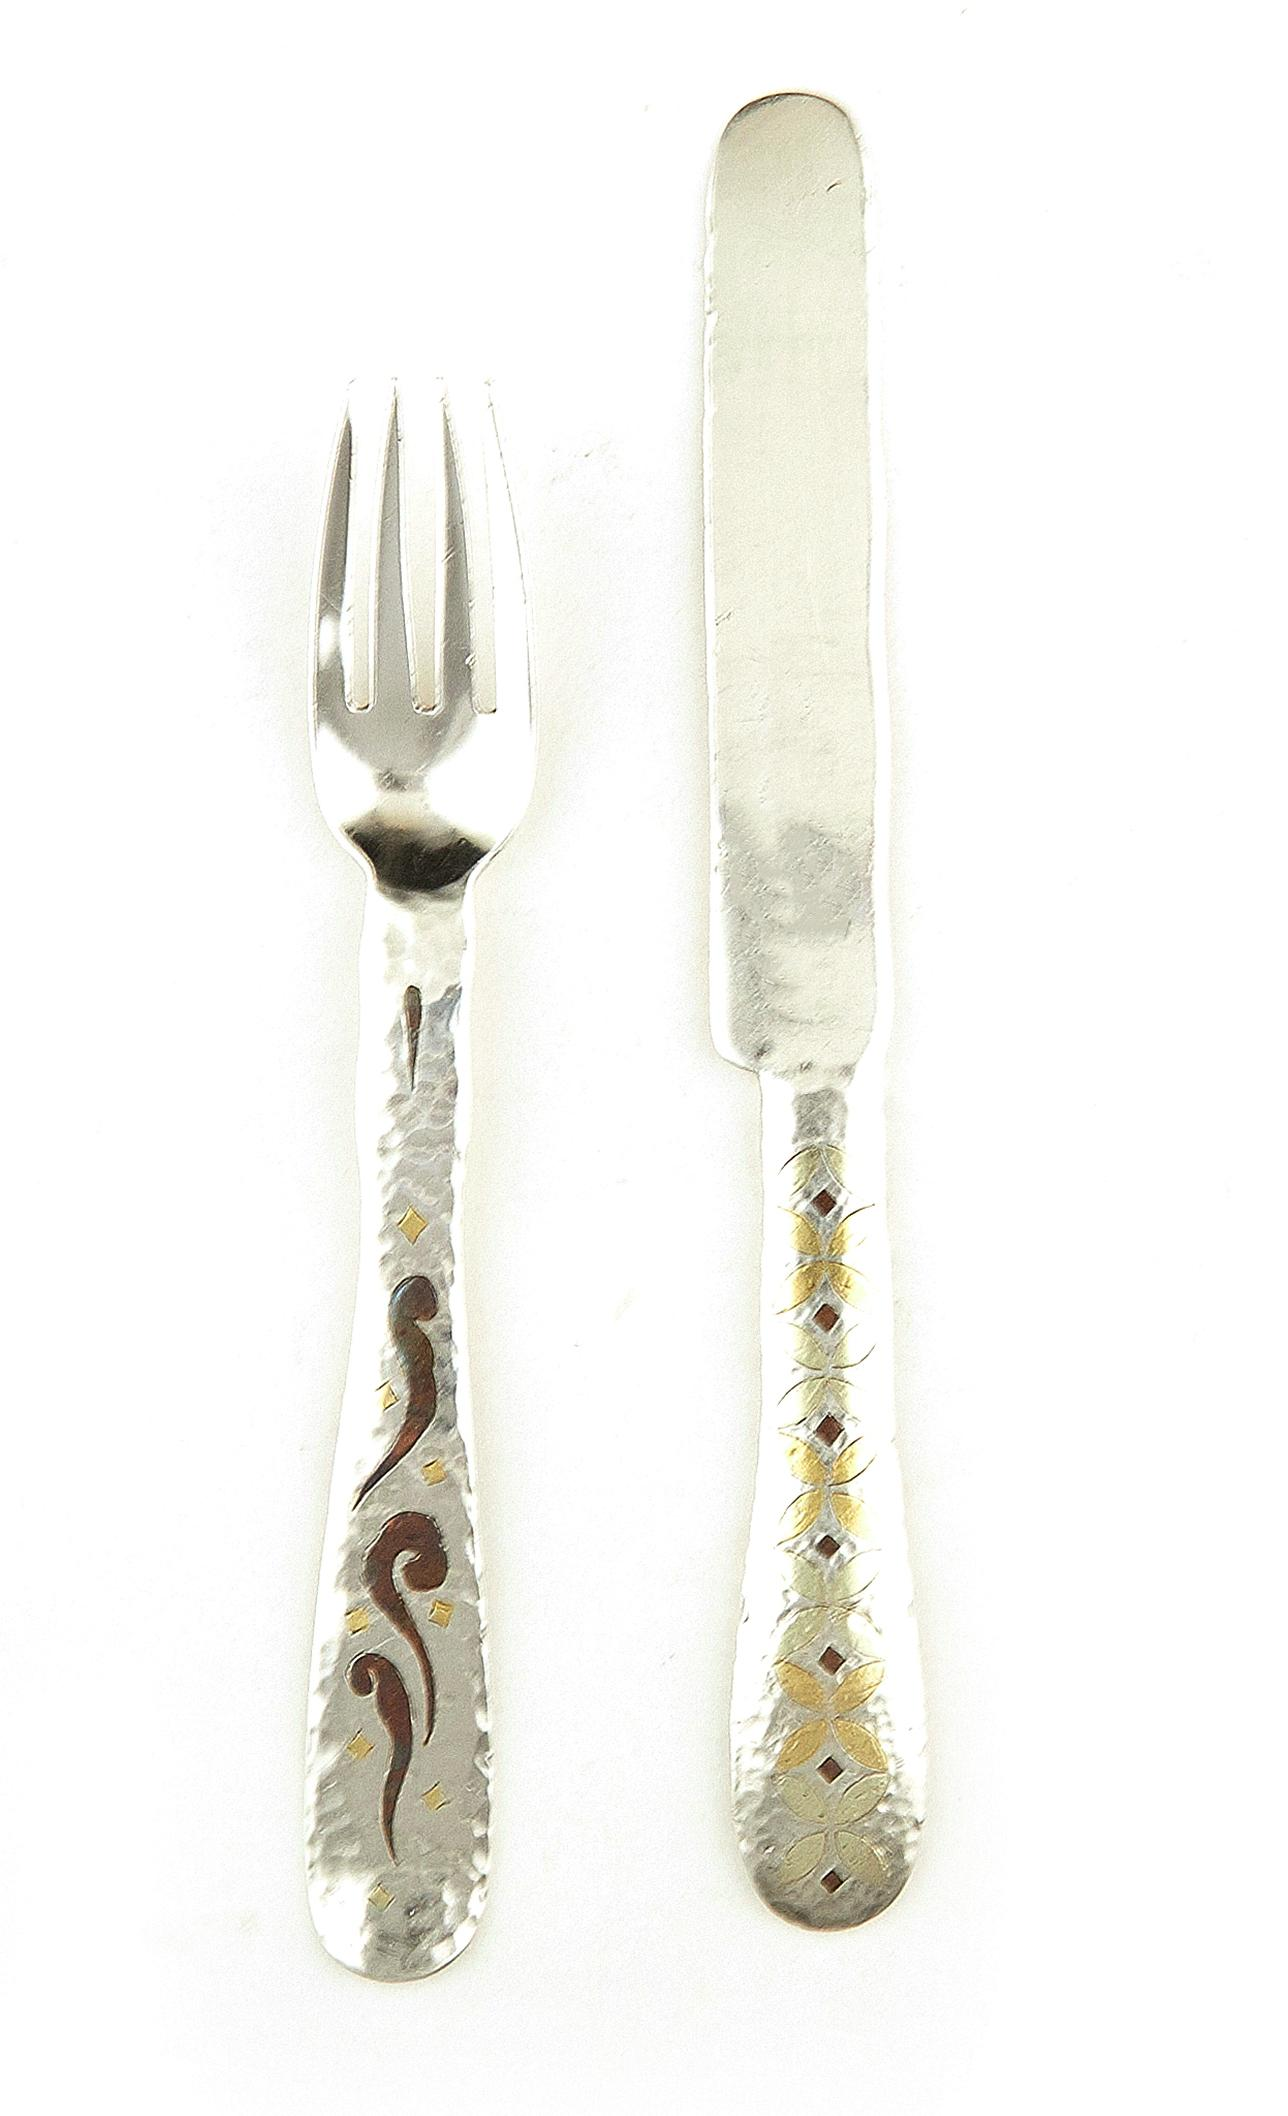 American silver and mixed-metal fork and knife set, Tiffany & Co (2pcs)